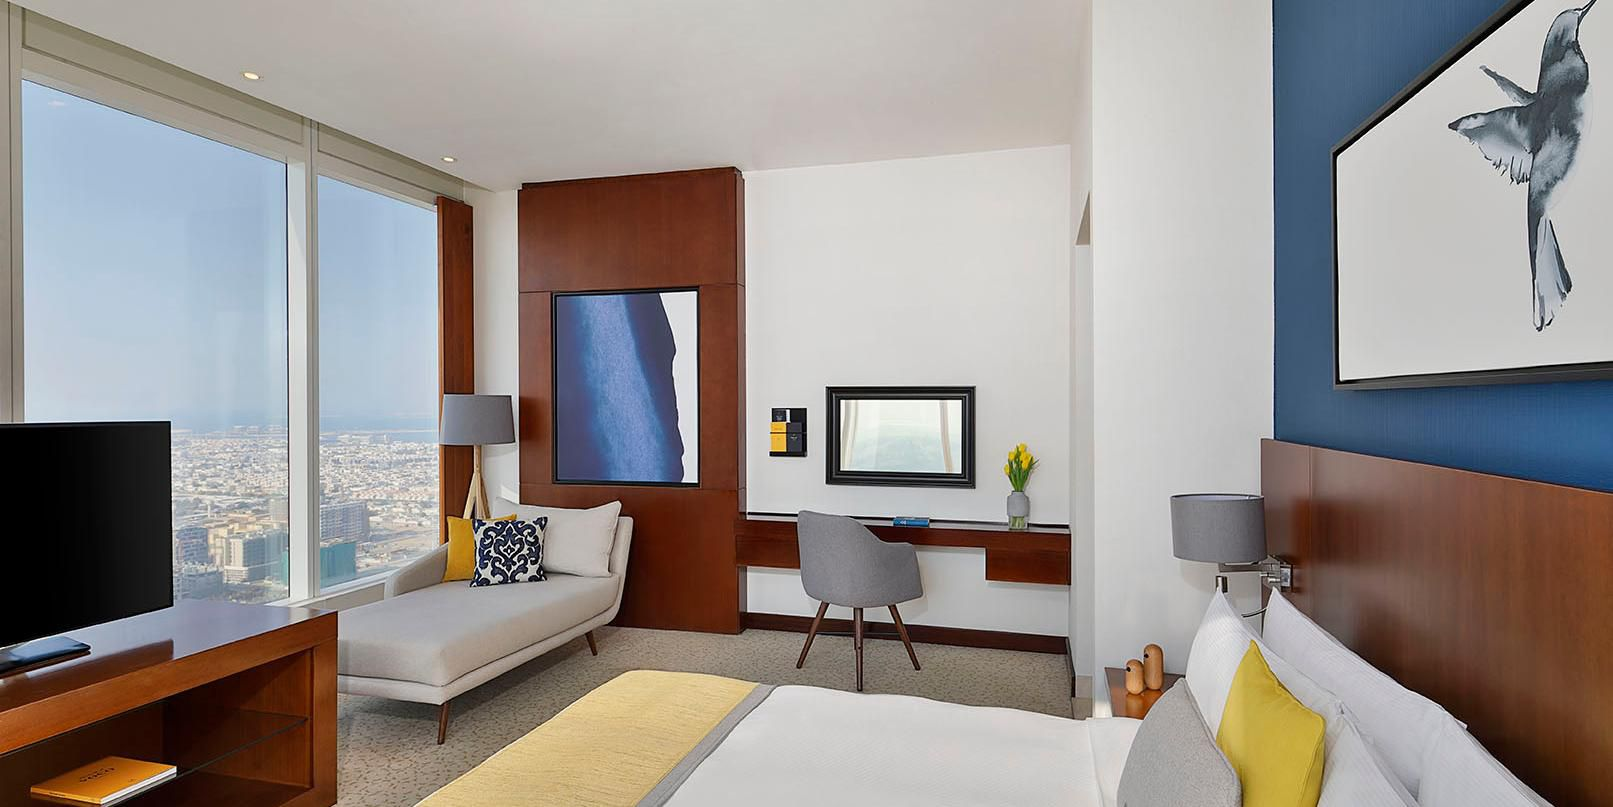 Deluxe Room with views of Sheikh Zayed Road or Jumeirah Beach